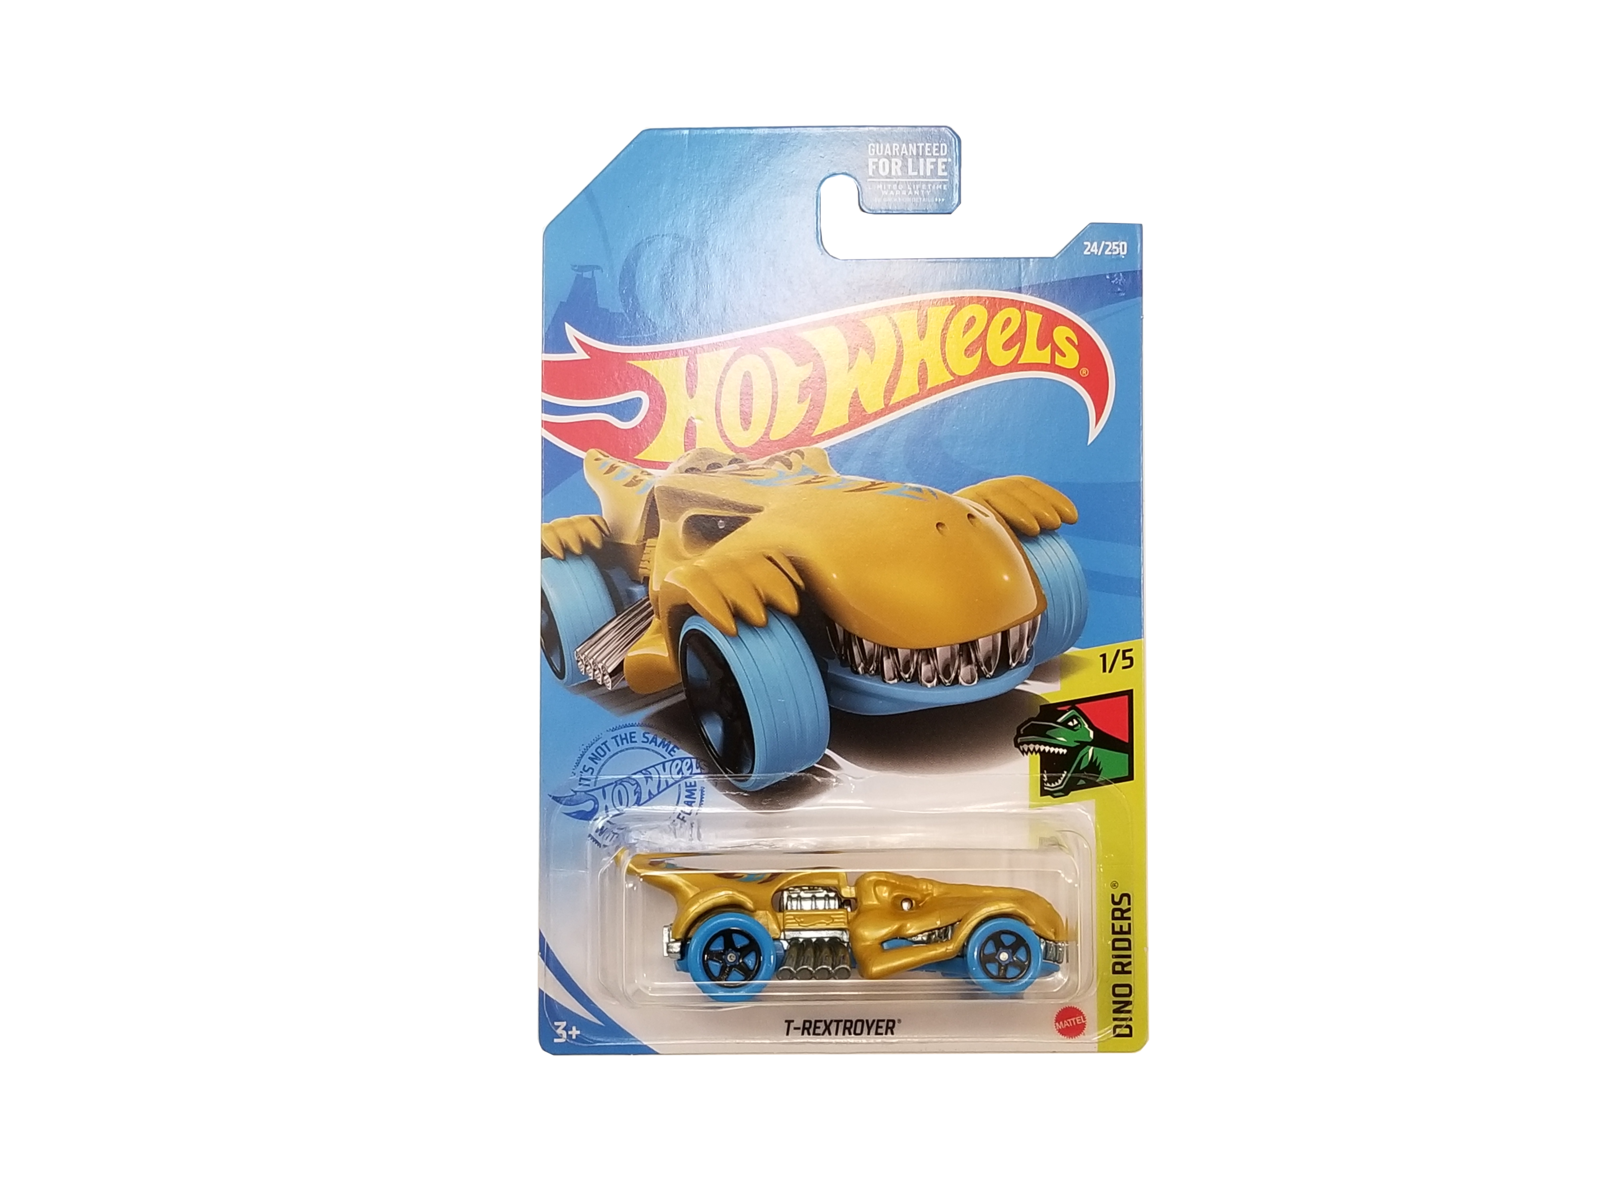 Hot wheels t rextroyer gry60 m9c0a